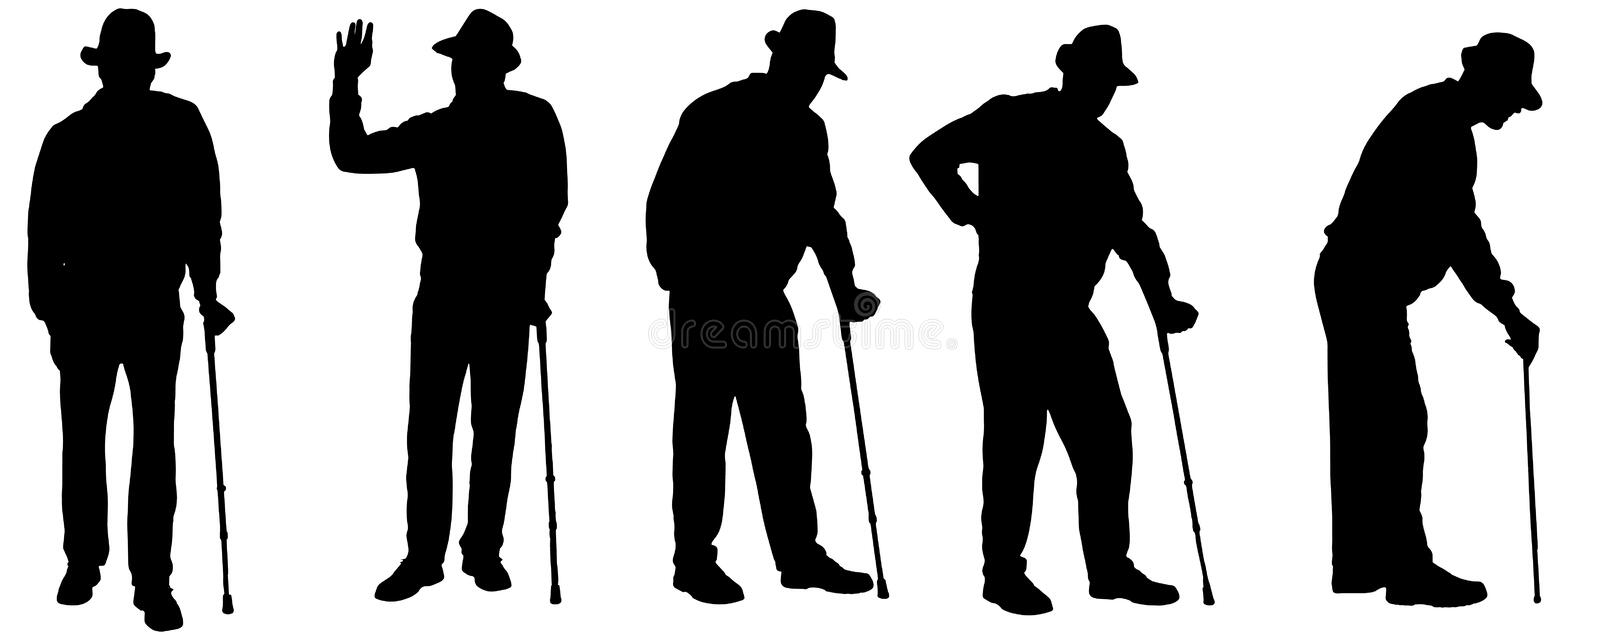 Vector Silhouette Of The Old Man Stock Vector